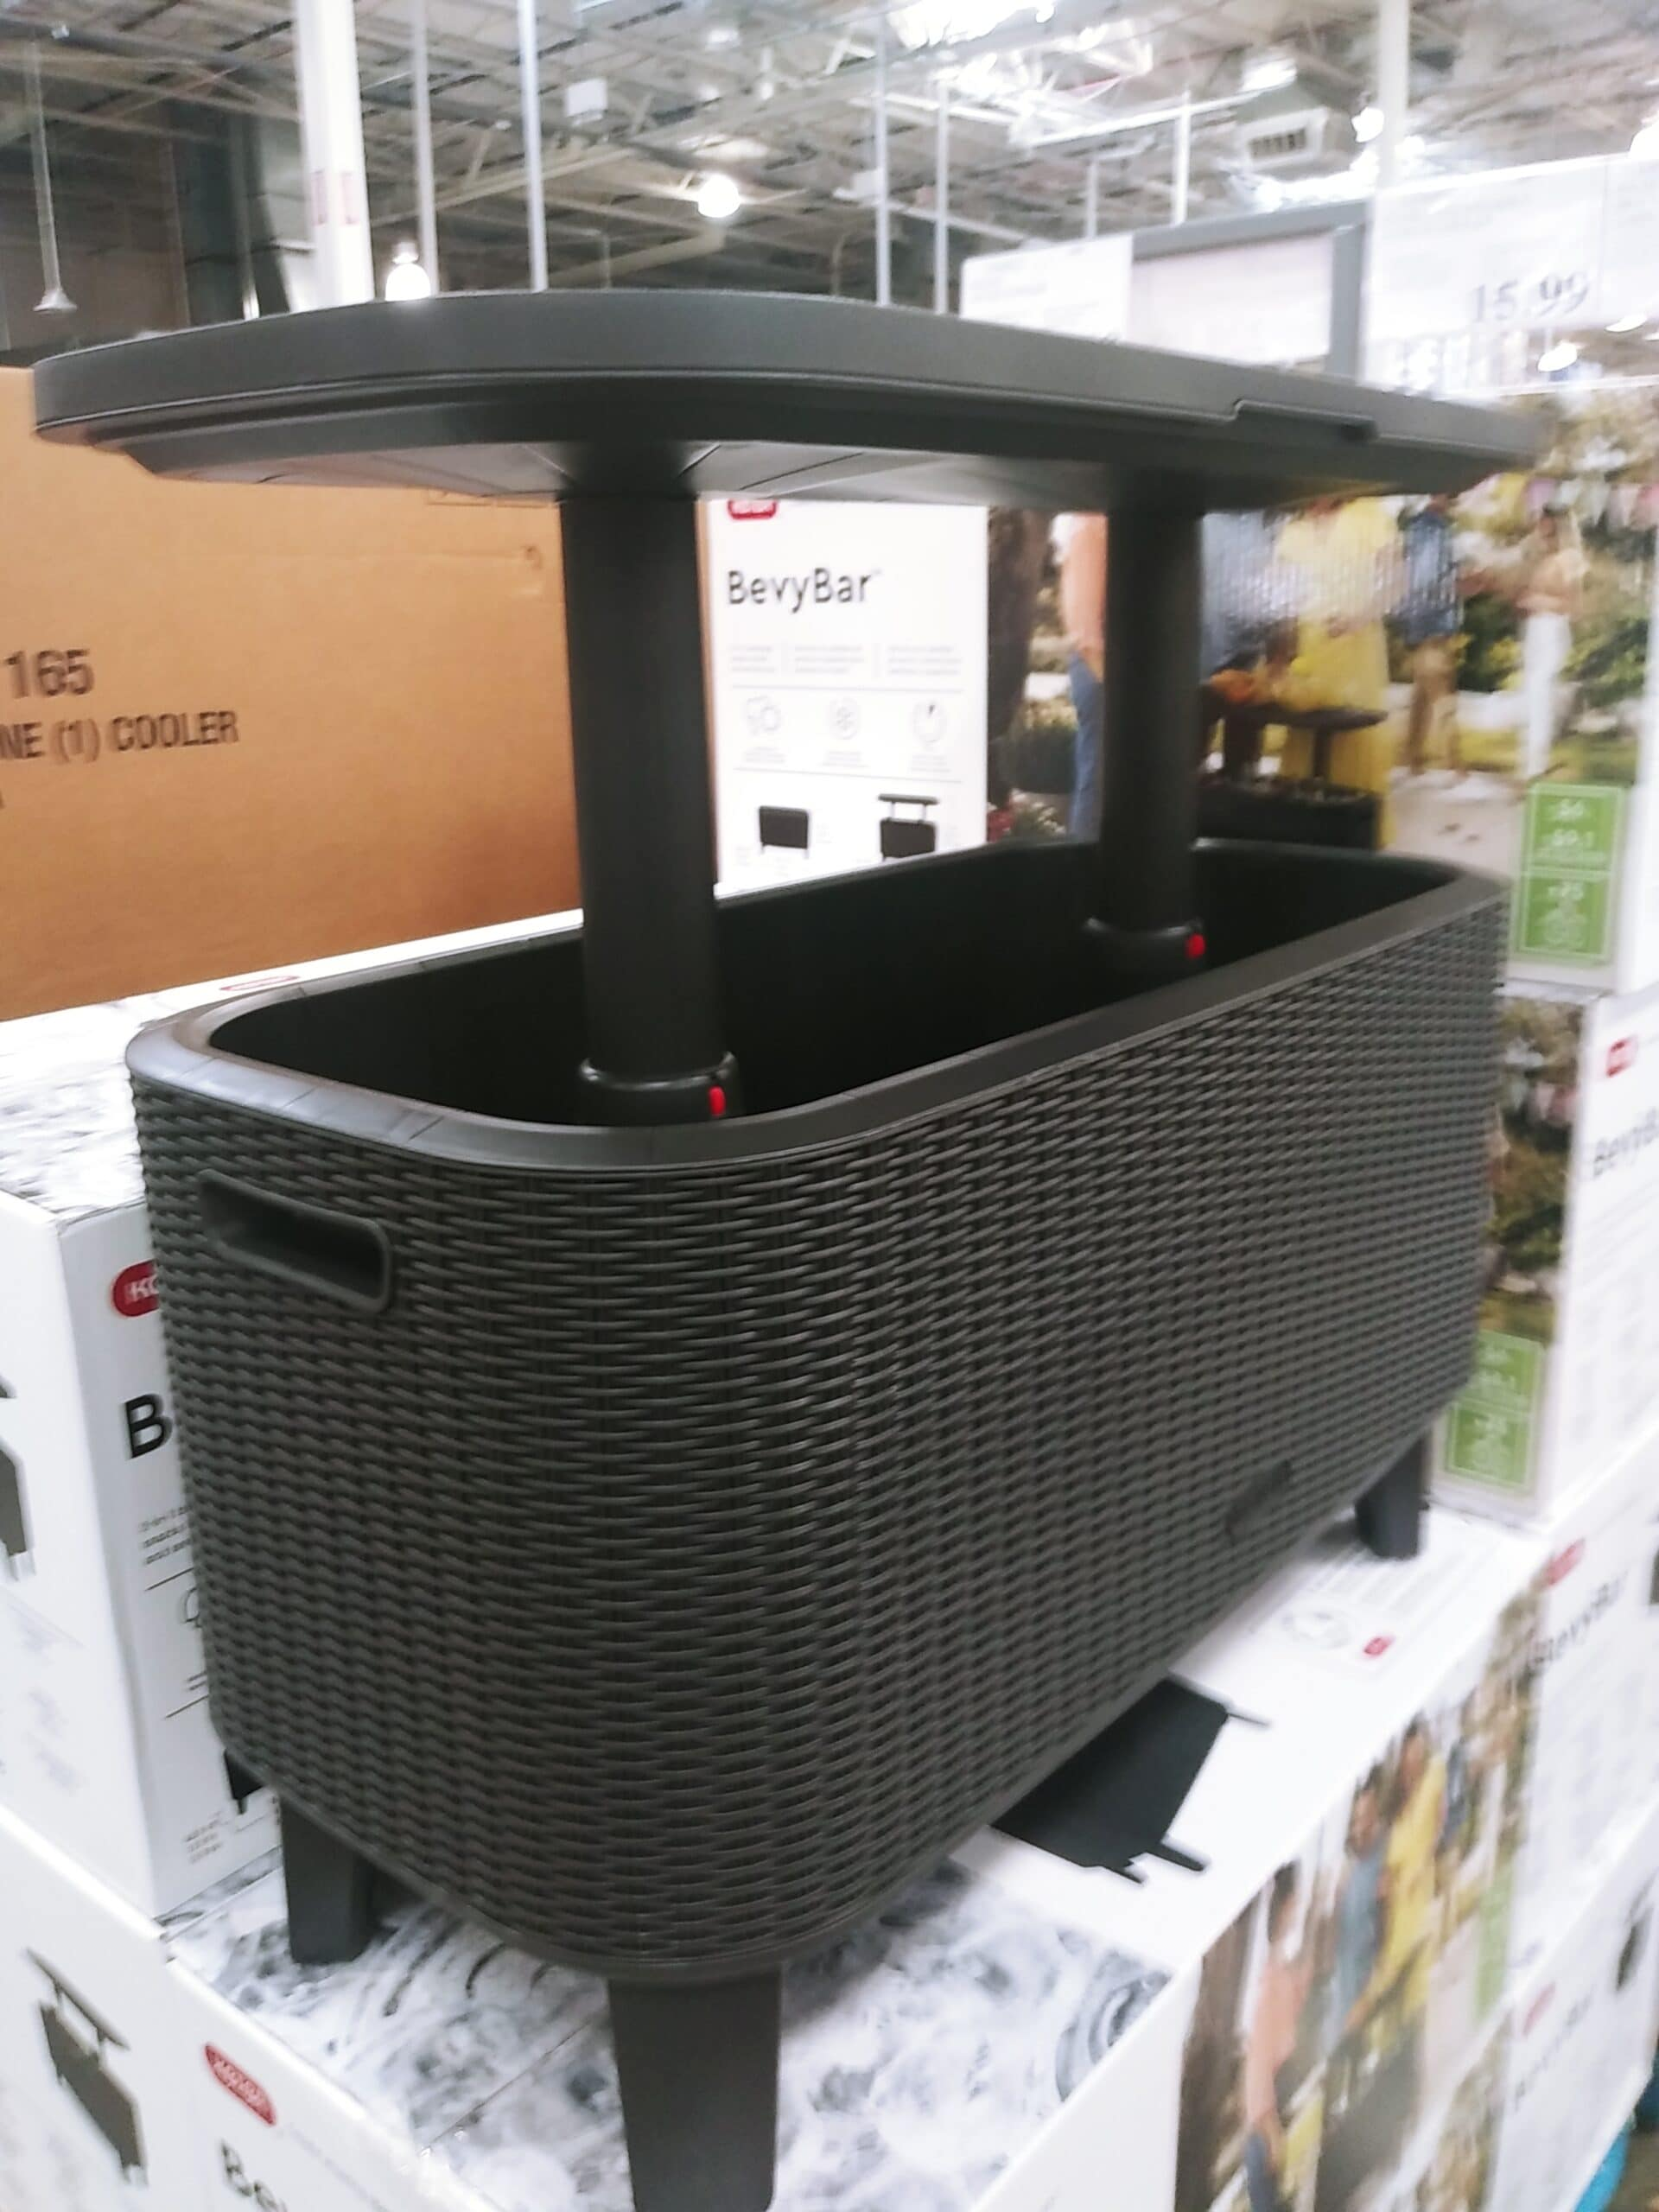 Keter Bevy Bar Table and Cooler Combo $99.99